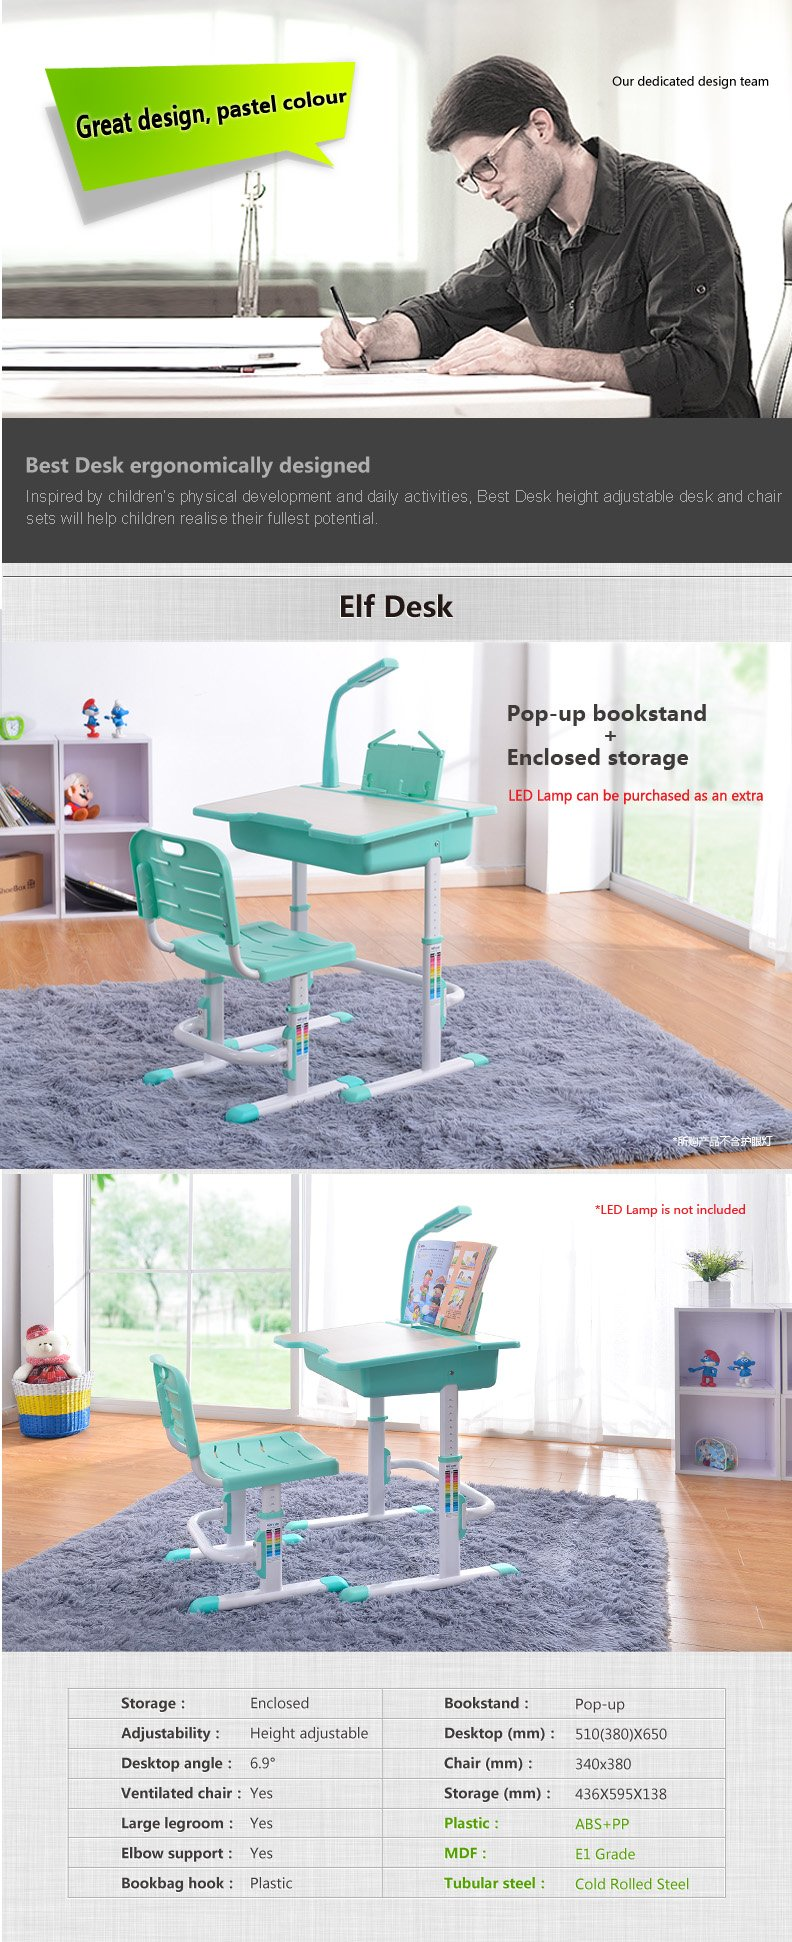 Best Desk kids adjustable desk chair Elf description 1